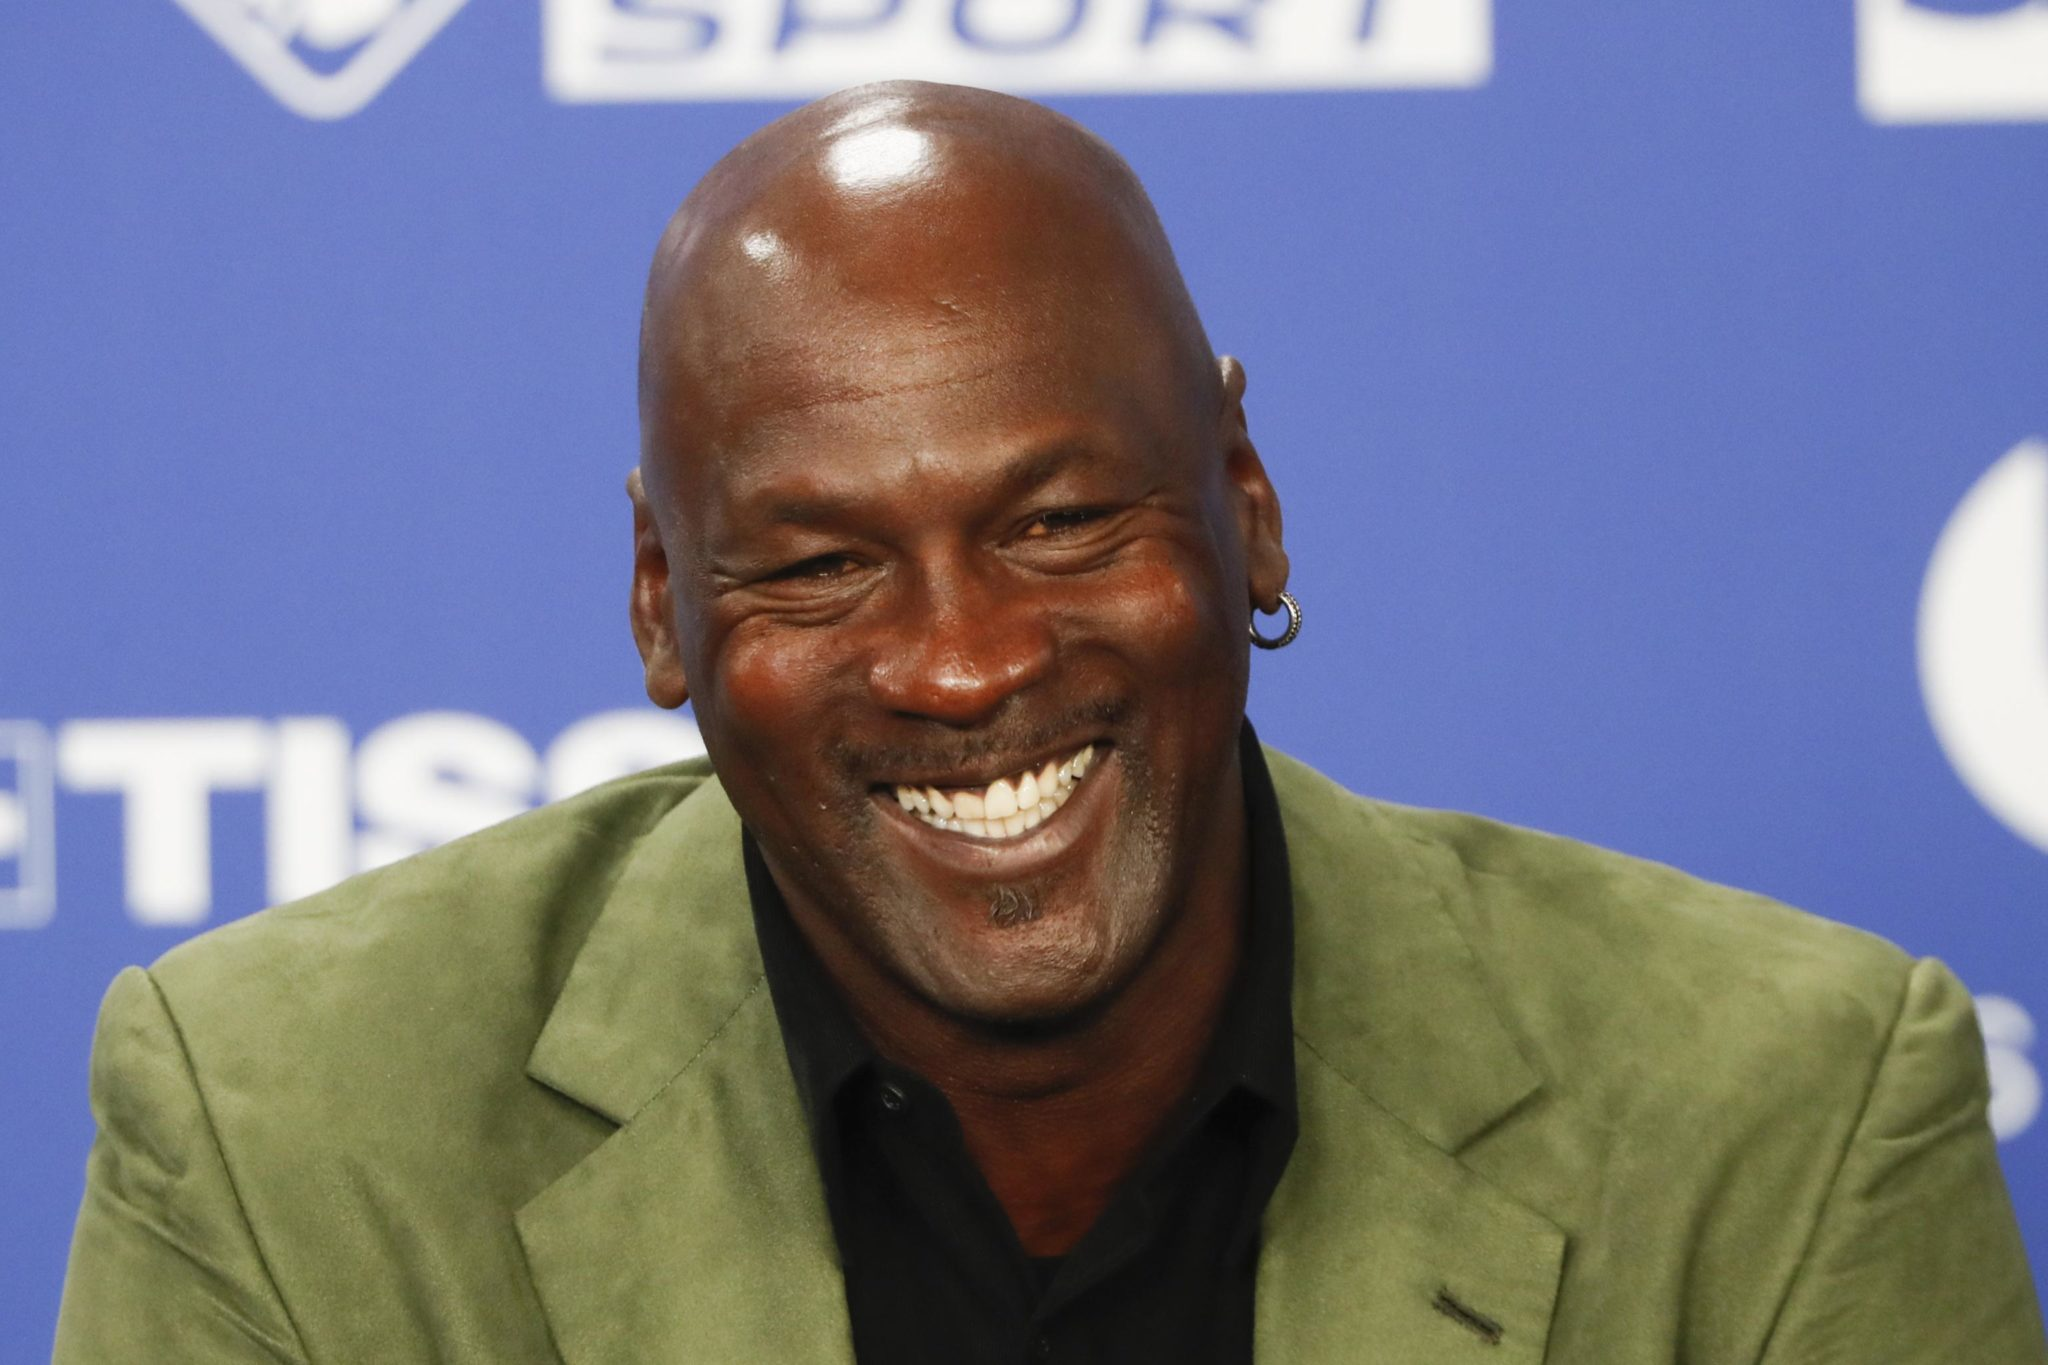 Michael Jordan Is Confident in Science and the Upcoming NBA Season